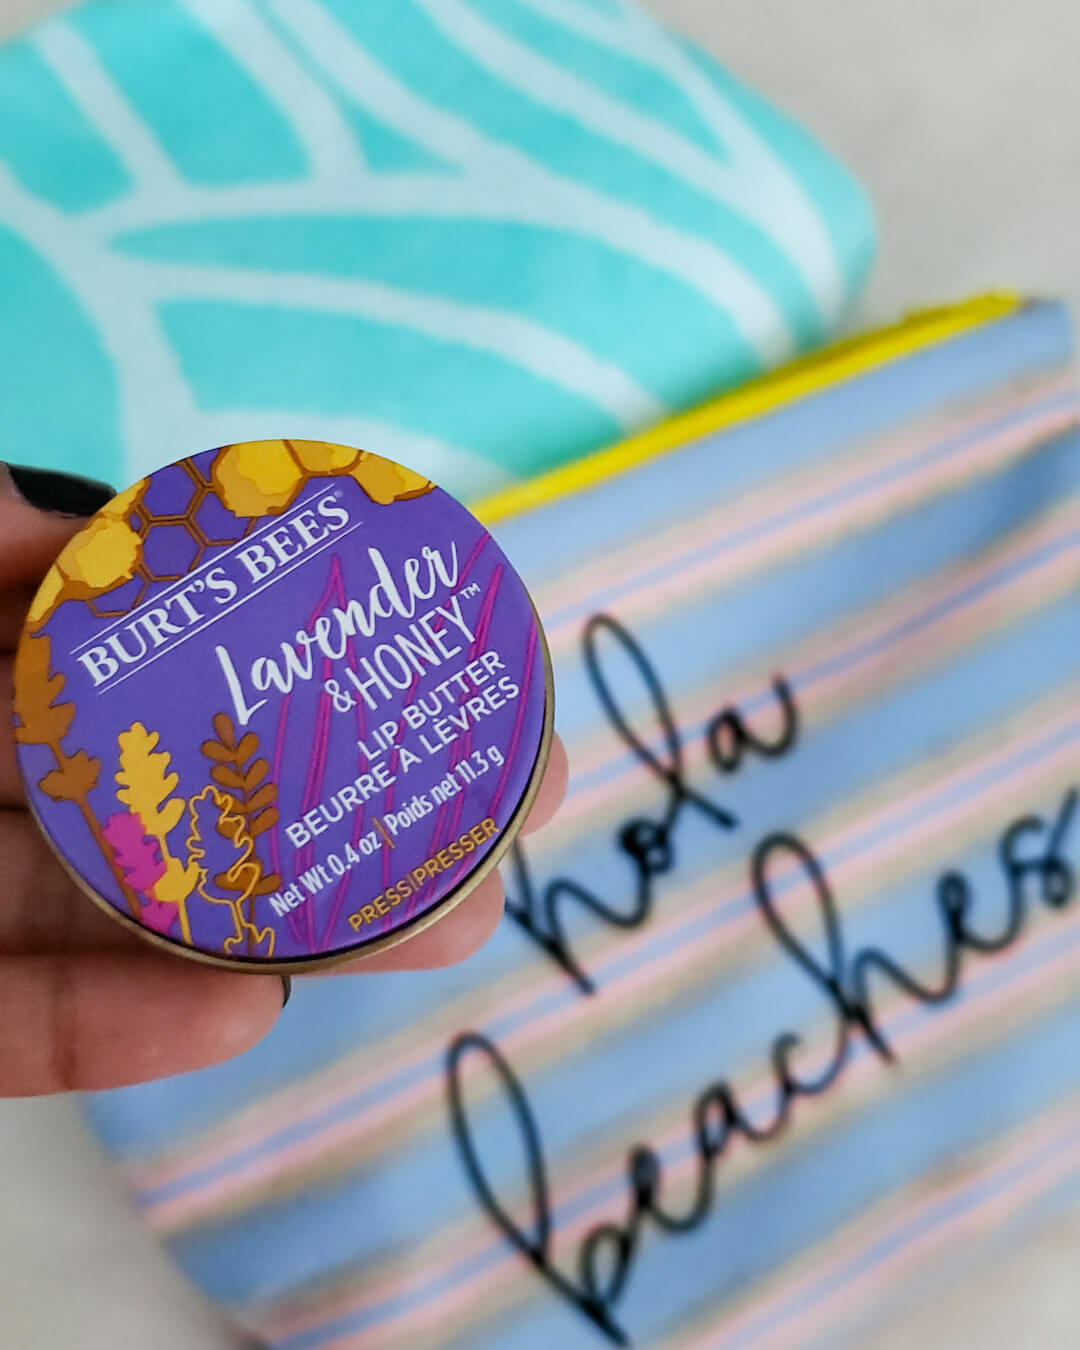 Burt's Bees Lip Butter Lavender & Honey